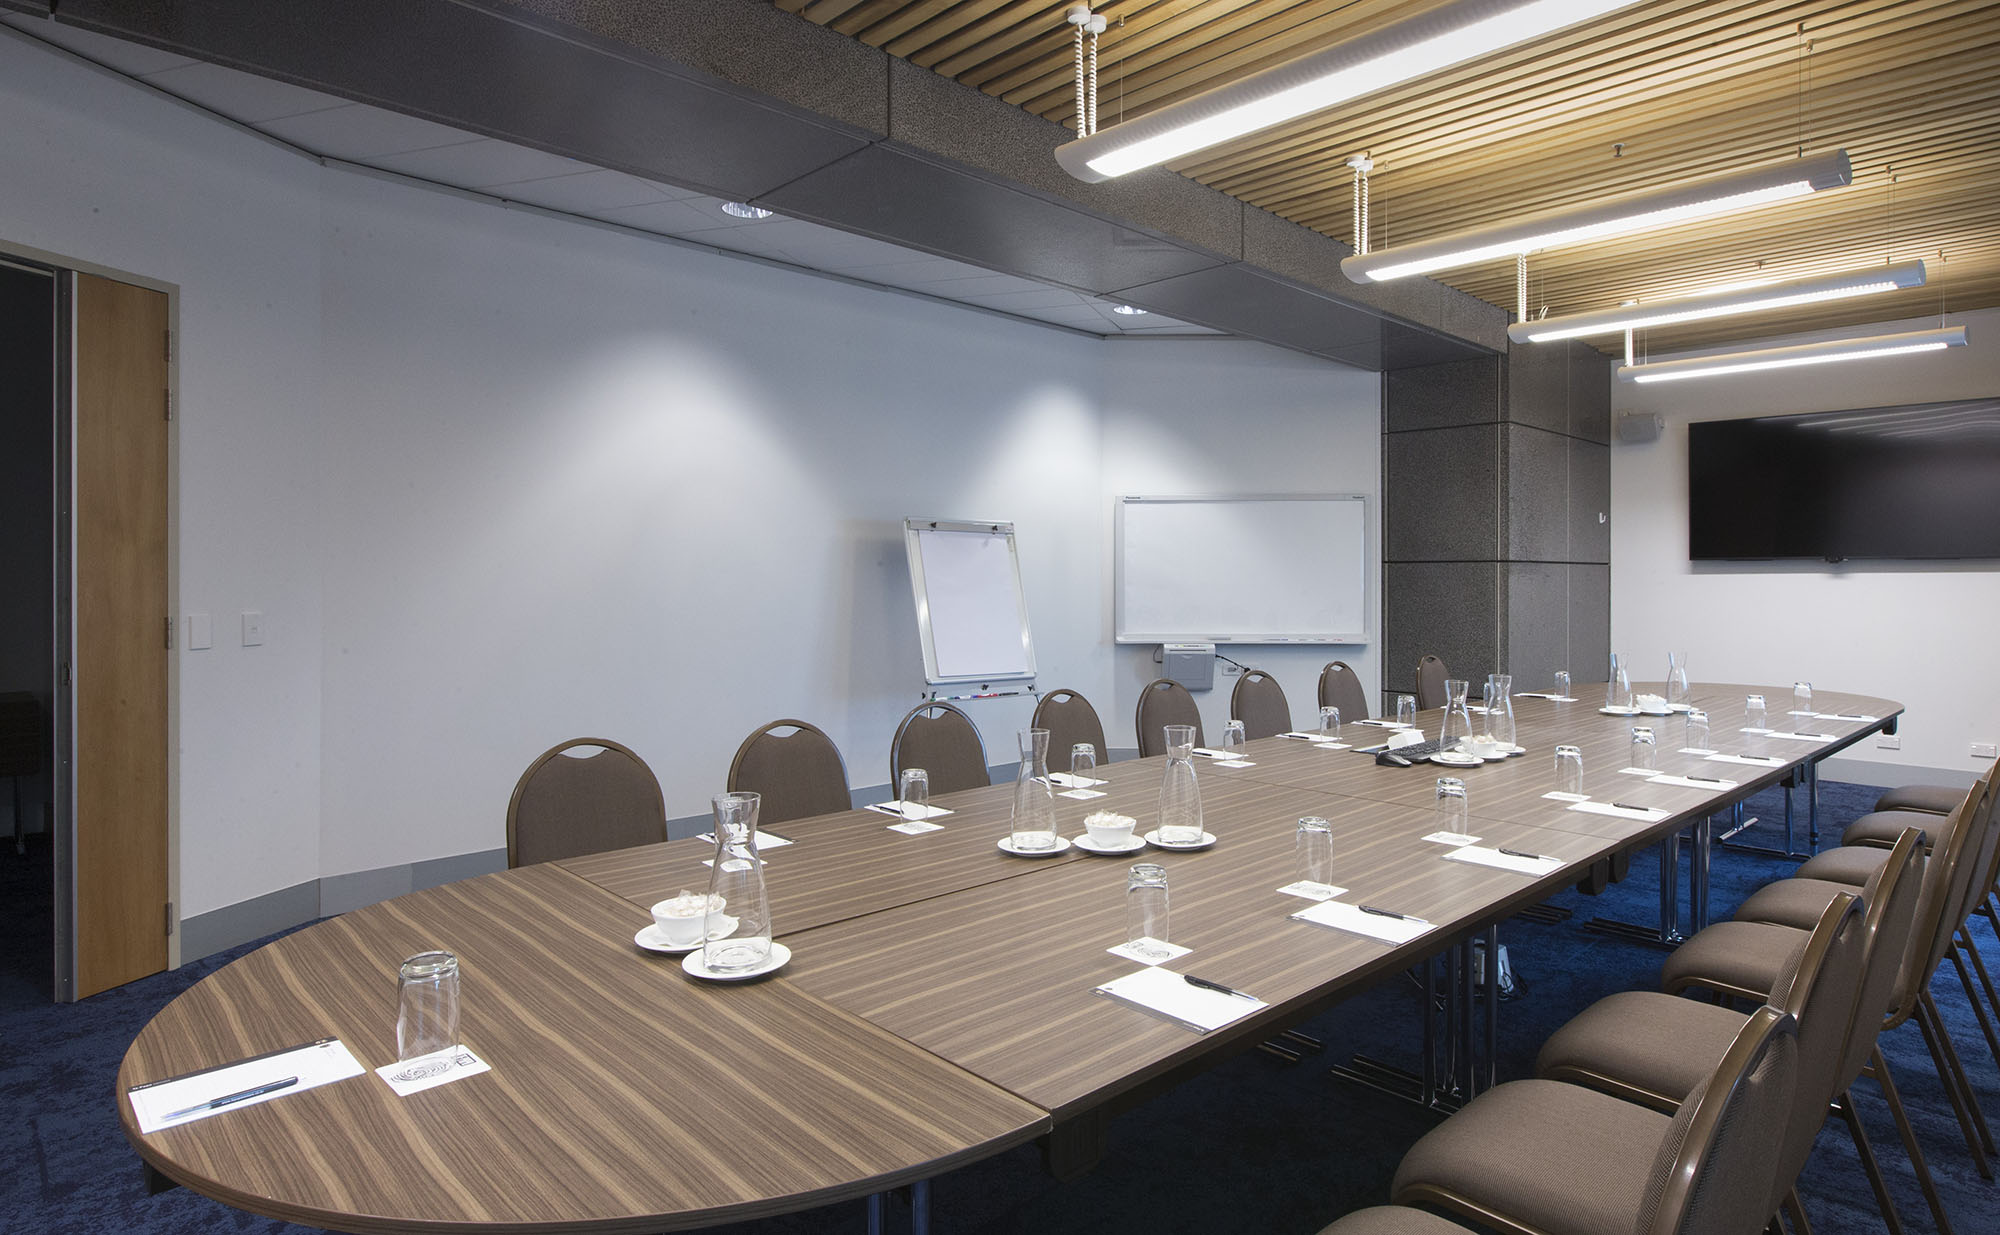 Meeting room showing a very large desk with pens and pads at each seat, and water bottle and mints in the middle. A white board and large pad are near the wall, with a TV screen on the wall